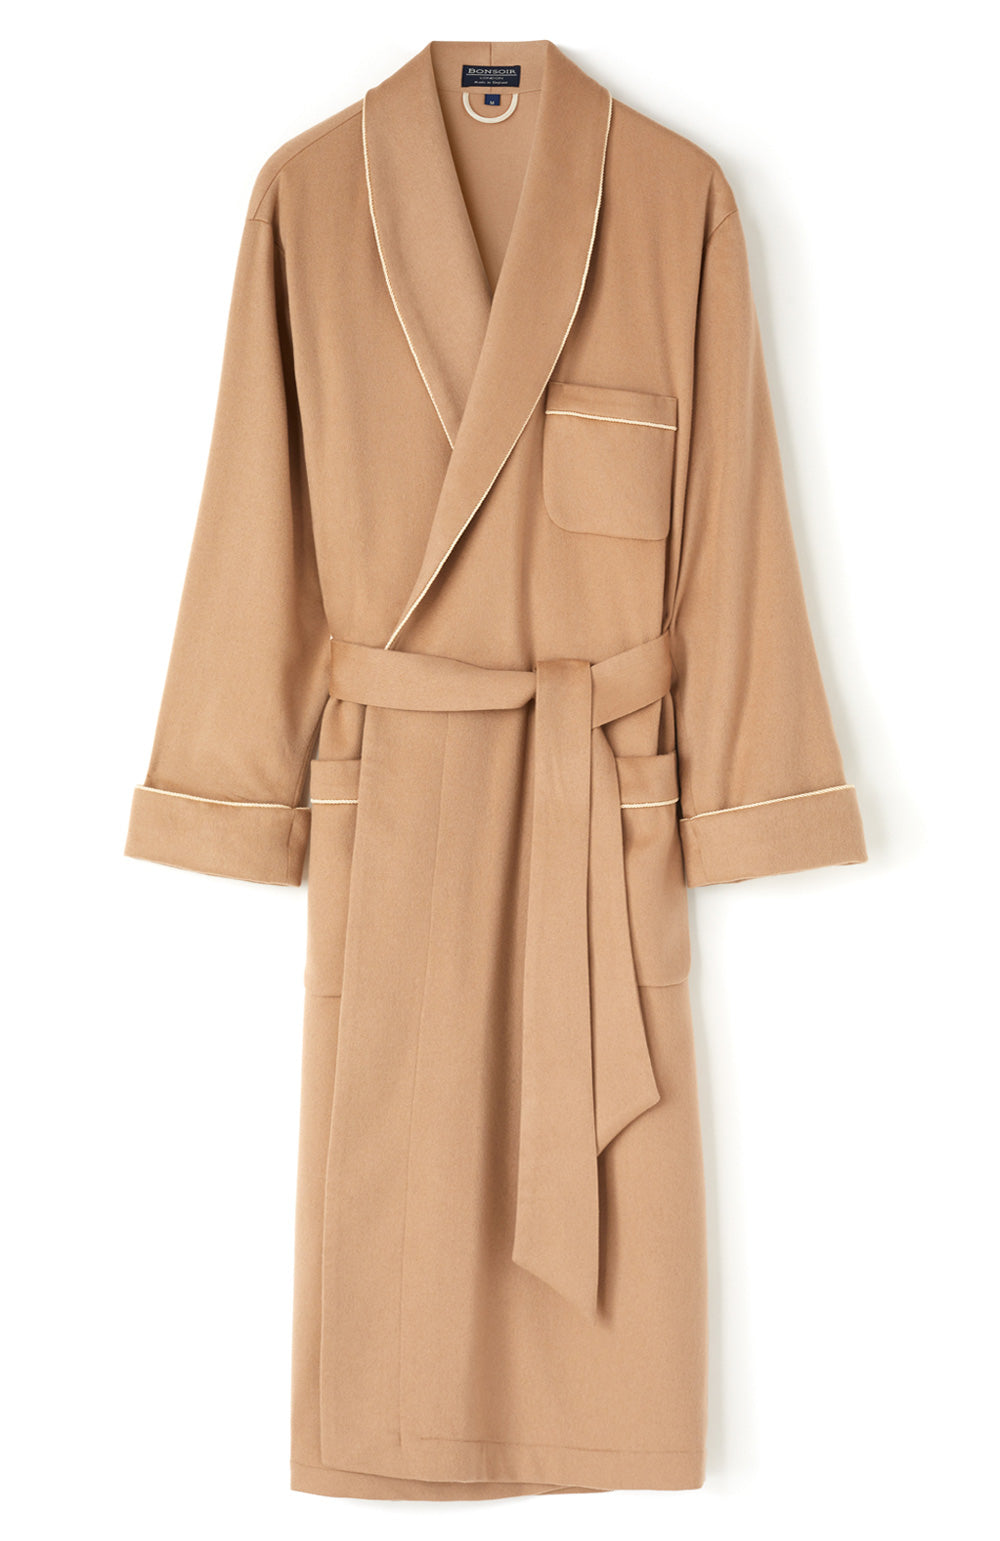 Men's Luxury Camel Cashmere Robe | Bonsoir of London